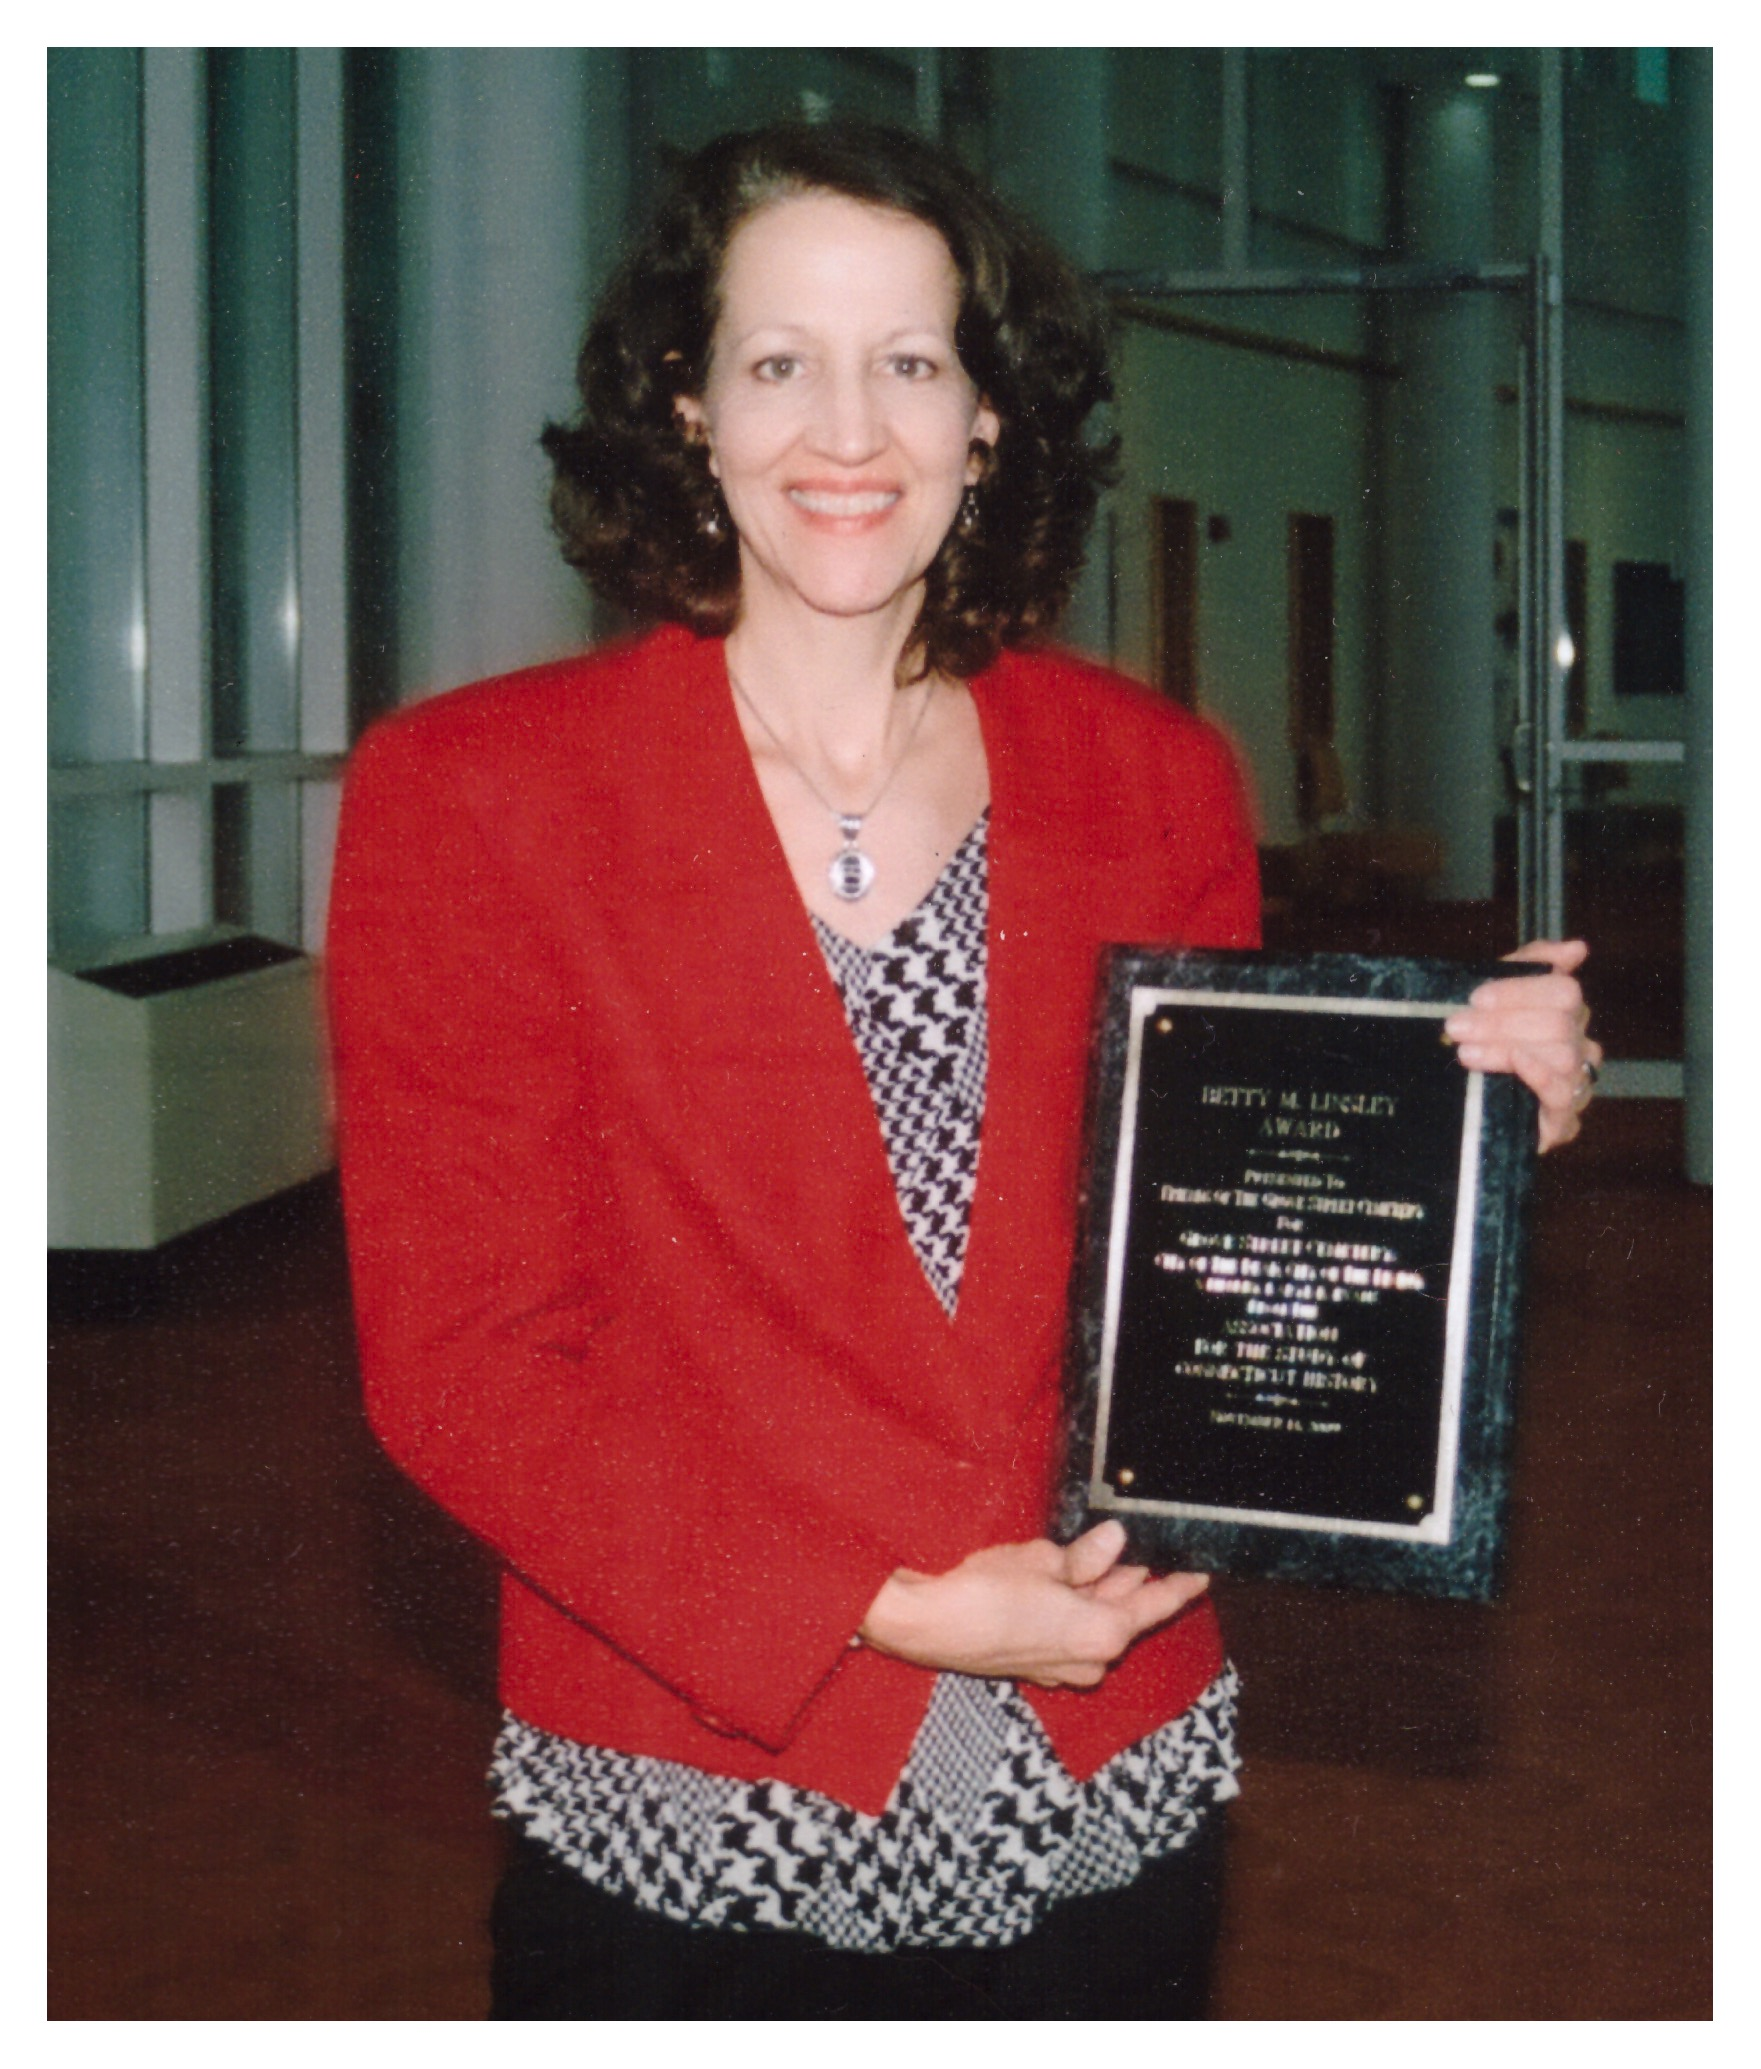 Karyl Evans wins Linsley Award from the Association for the Study of Connecticut History 2009